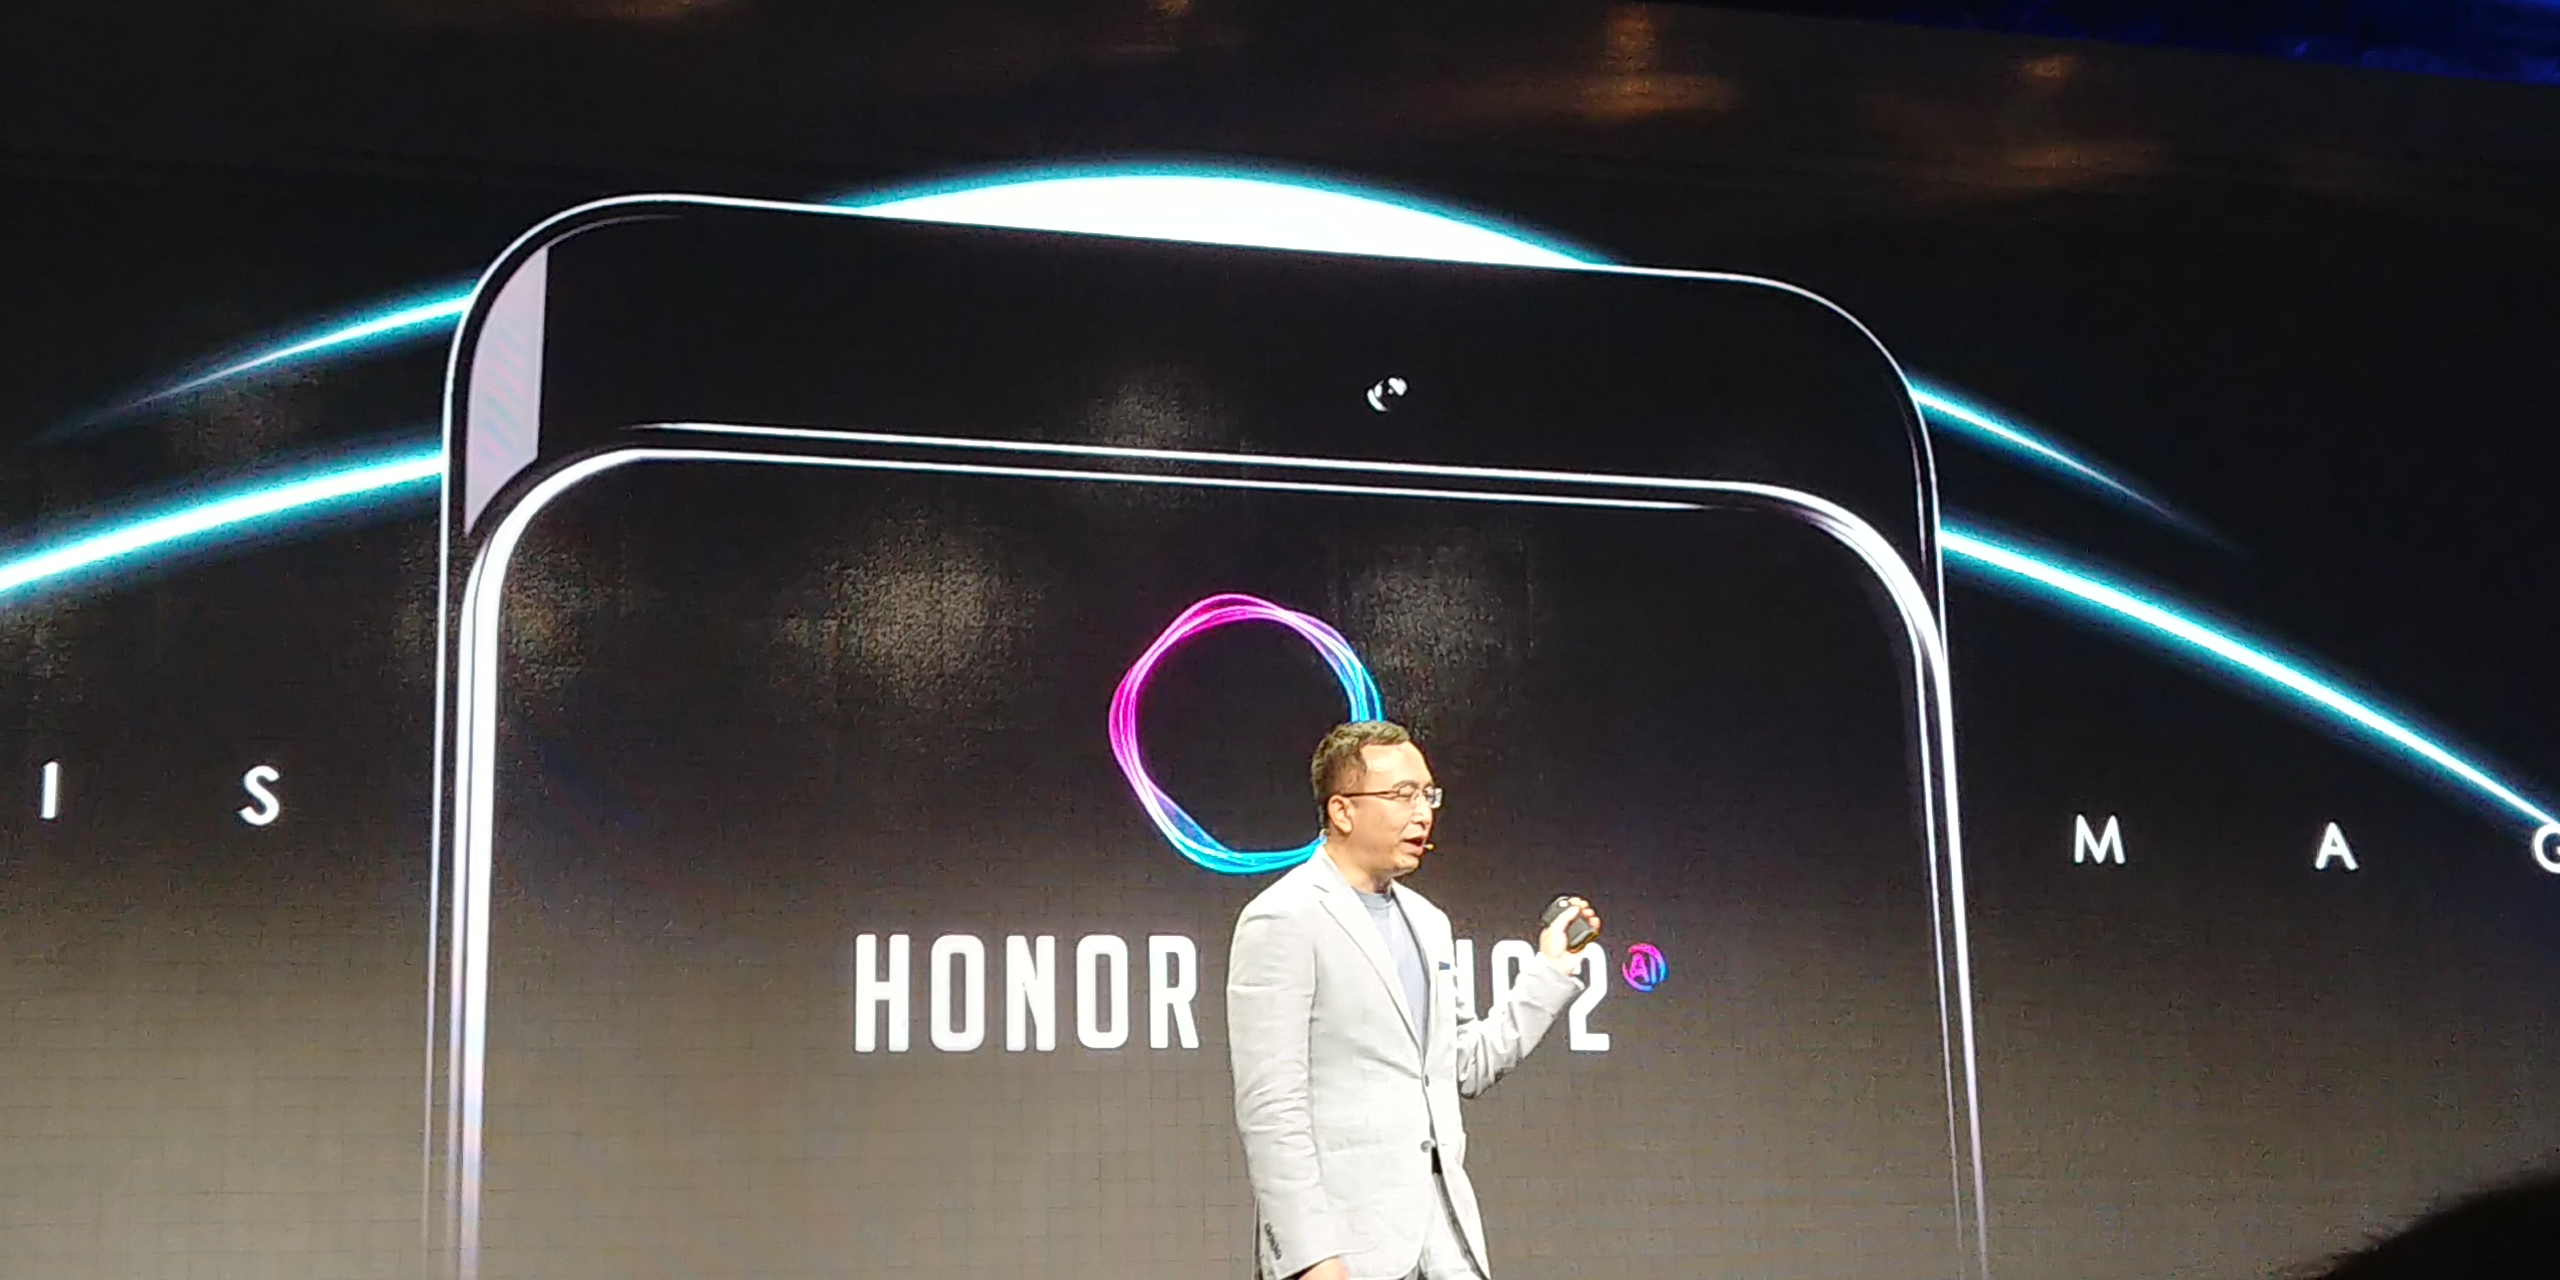 Huawei announced today the Honor Play is going global